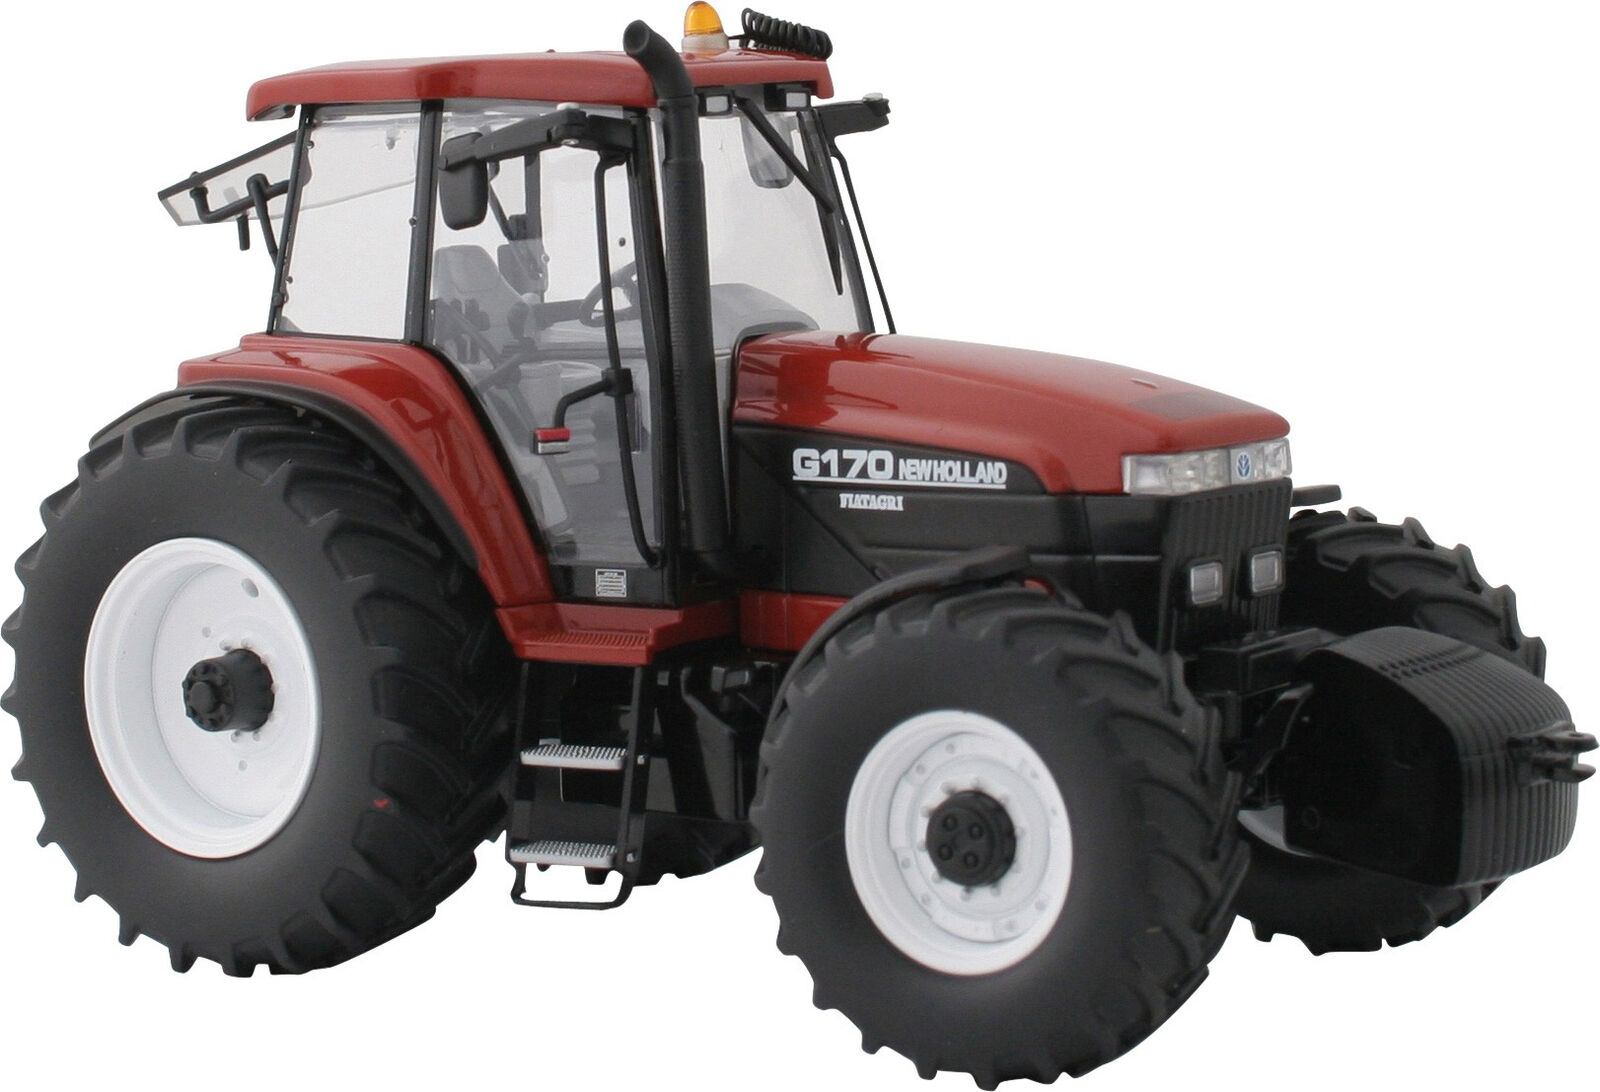 ROS30149 - Tracteur NEW HOLLAND G170 FIATAGRI - 1 32